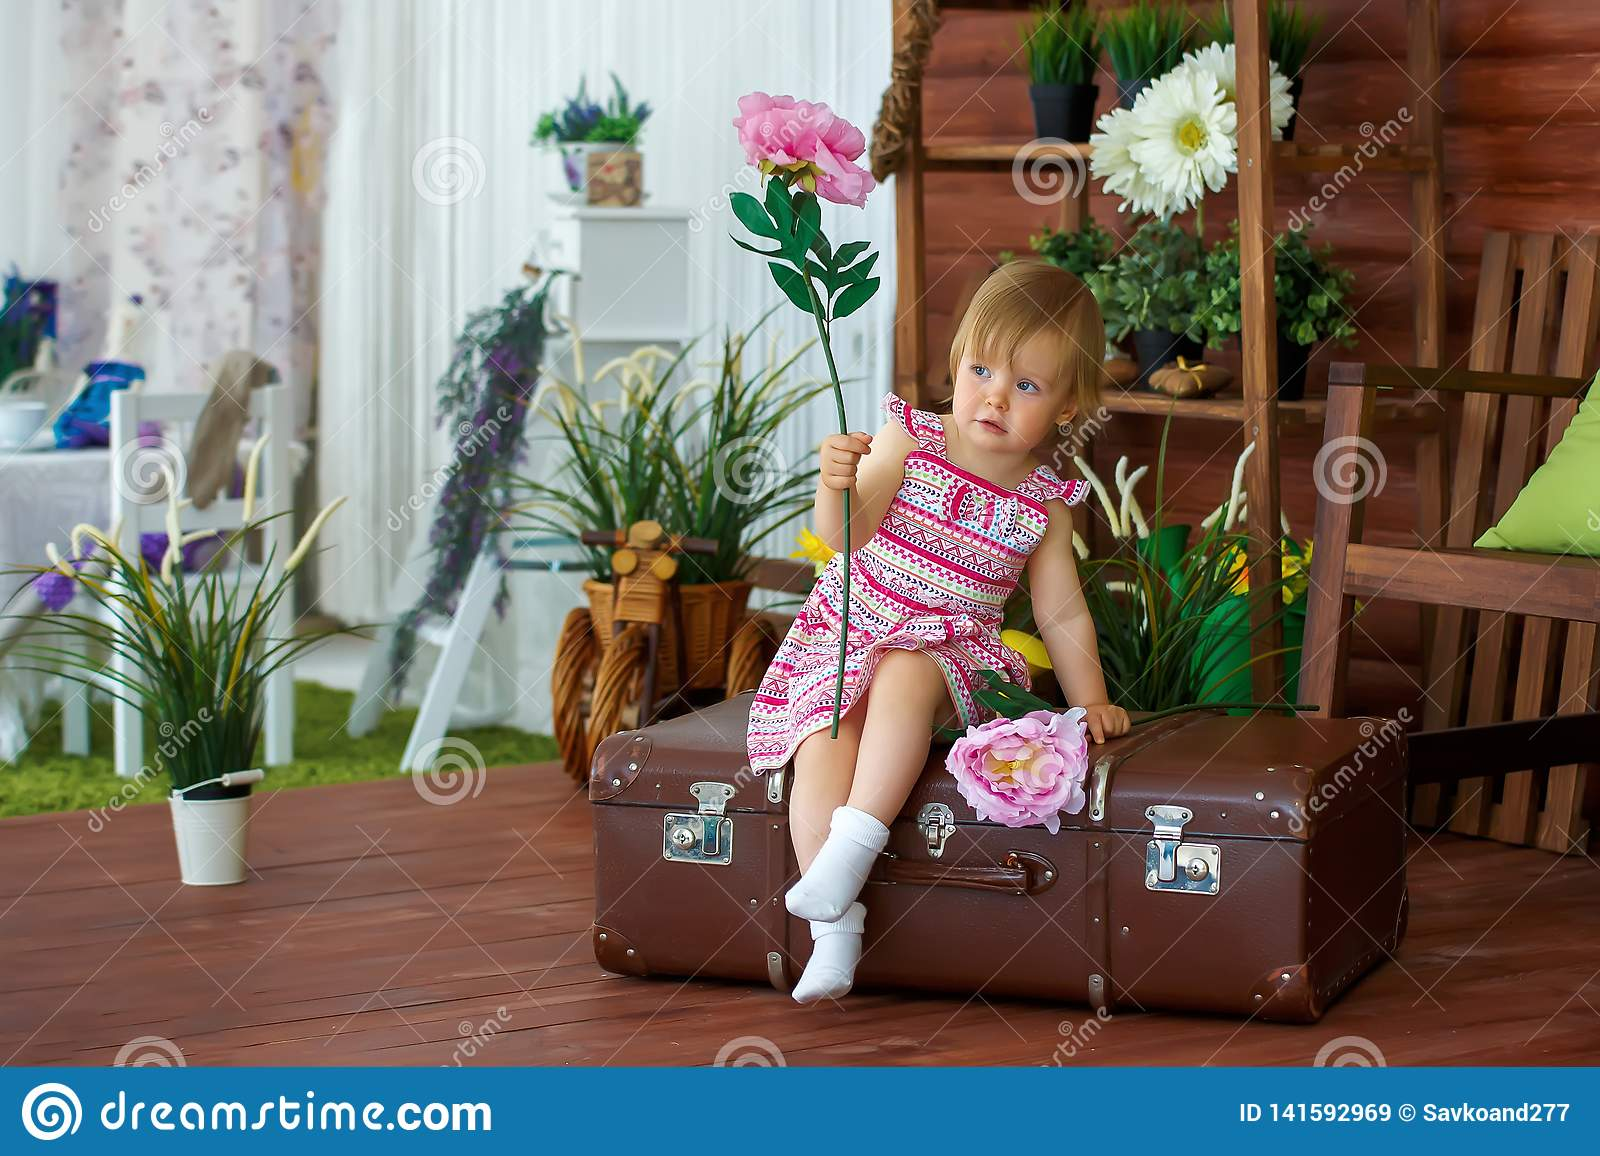 Little girl with a flower on a suitcase